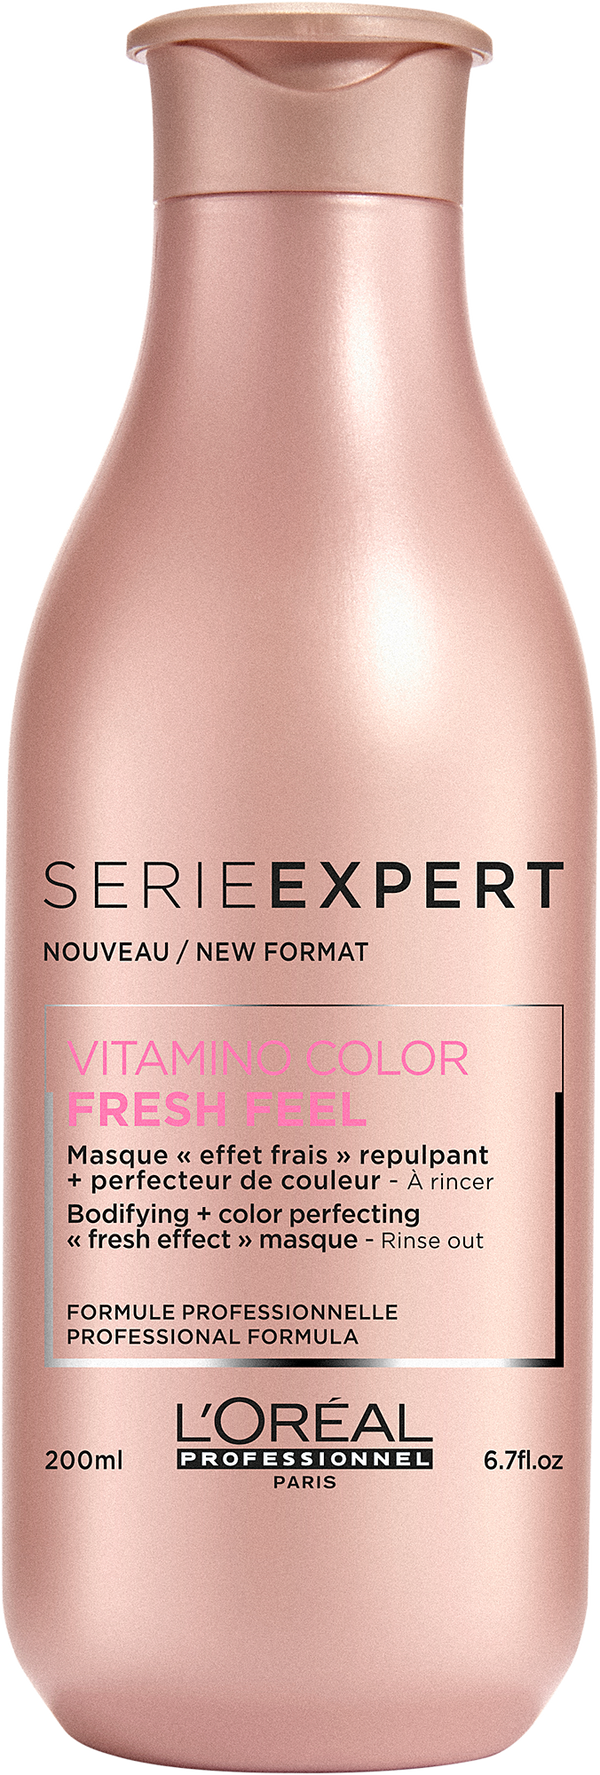 L'Oreal Professionnel Series Expert Vitamino Color Feel Fresh Mask 200ml